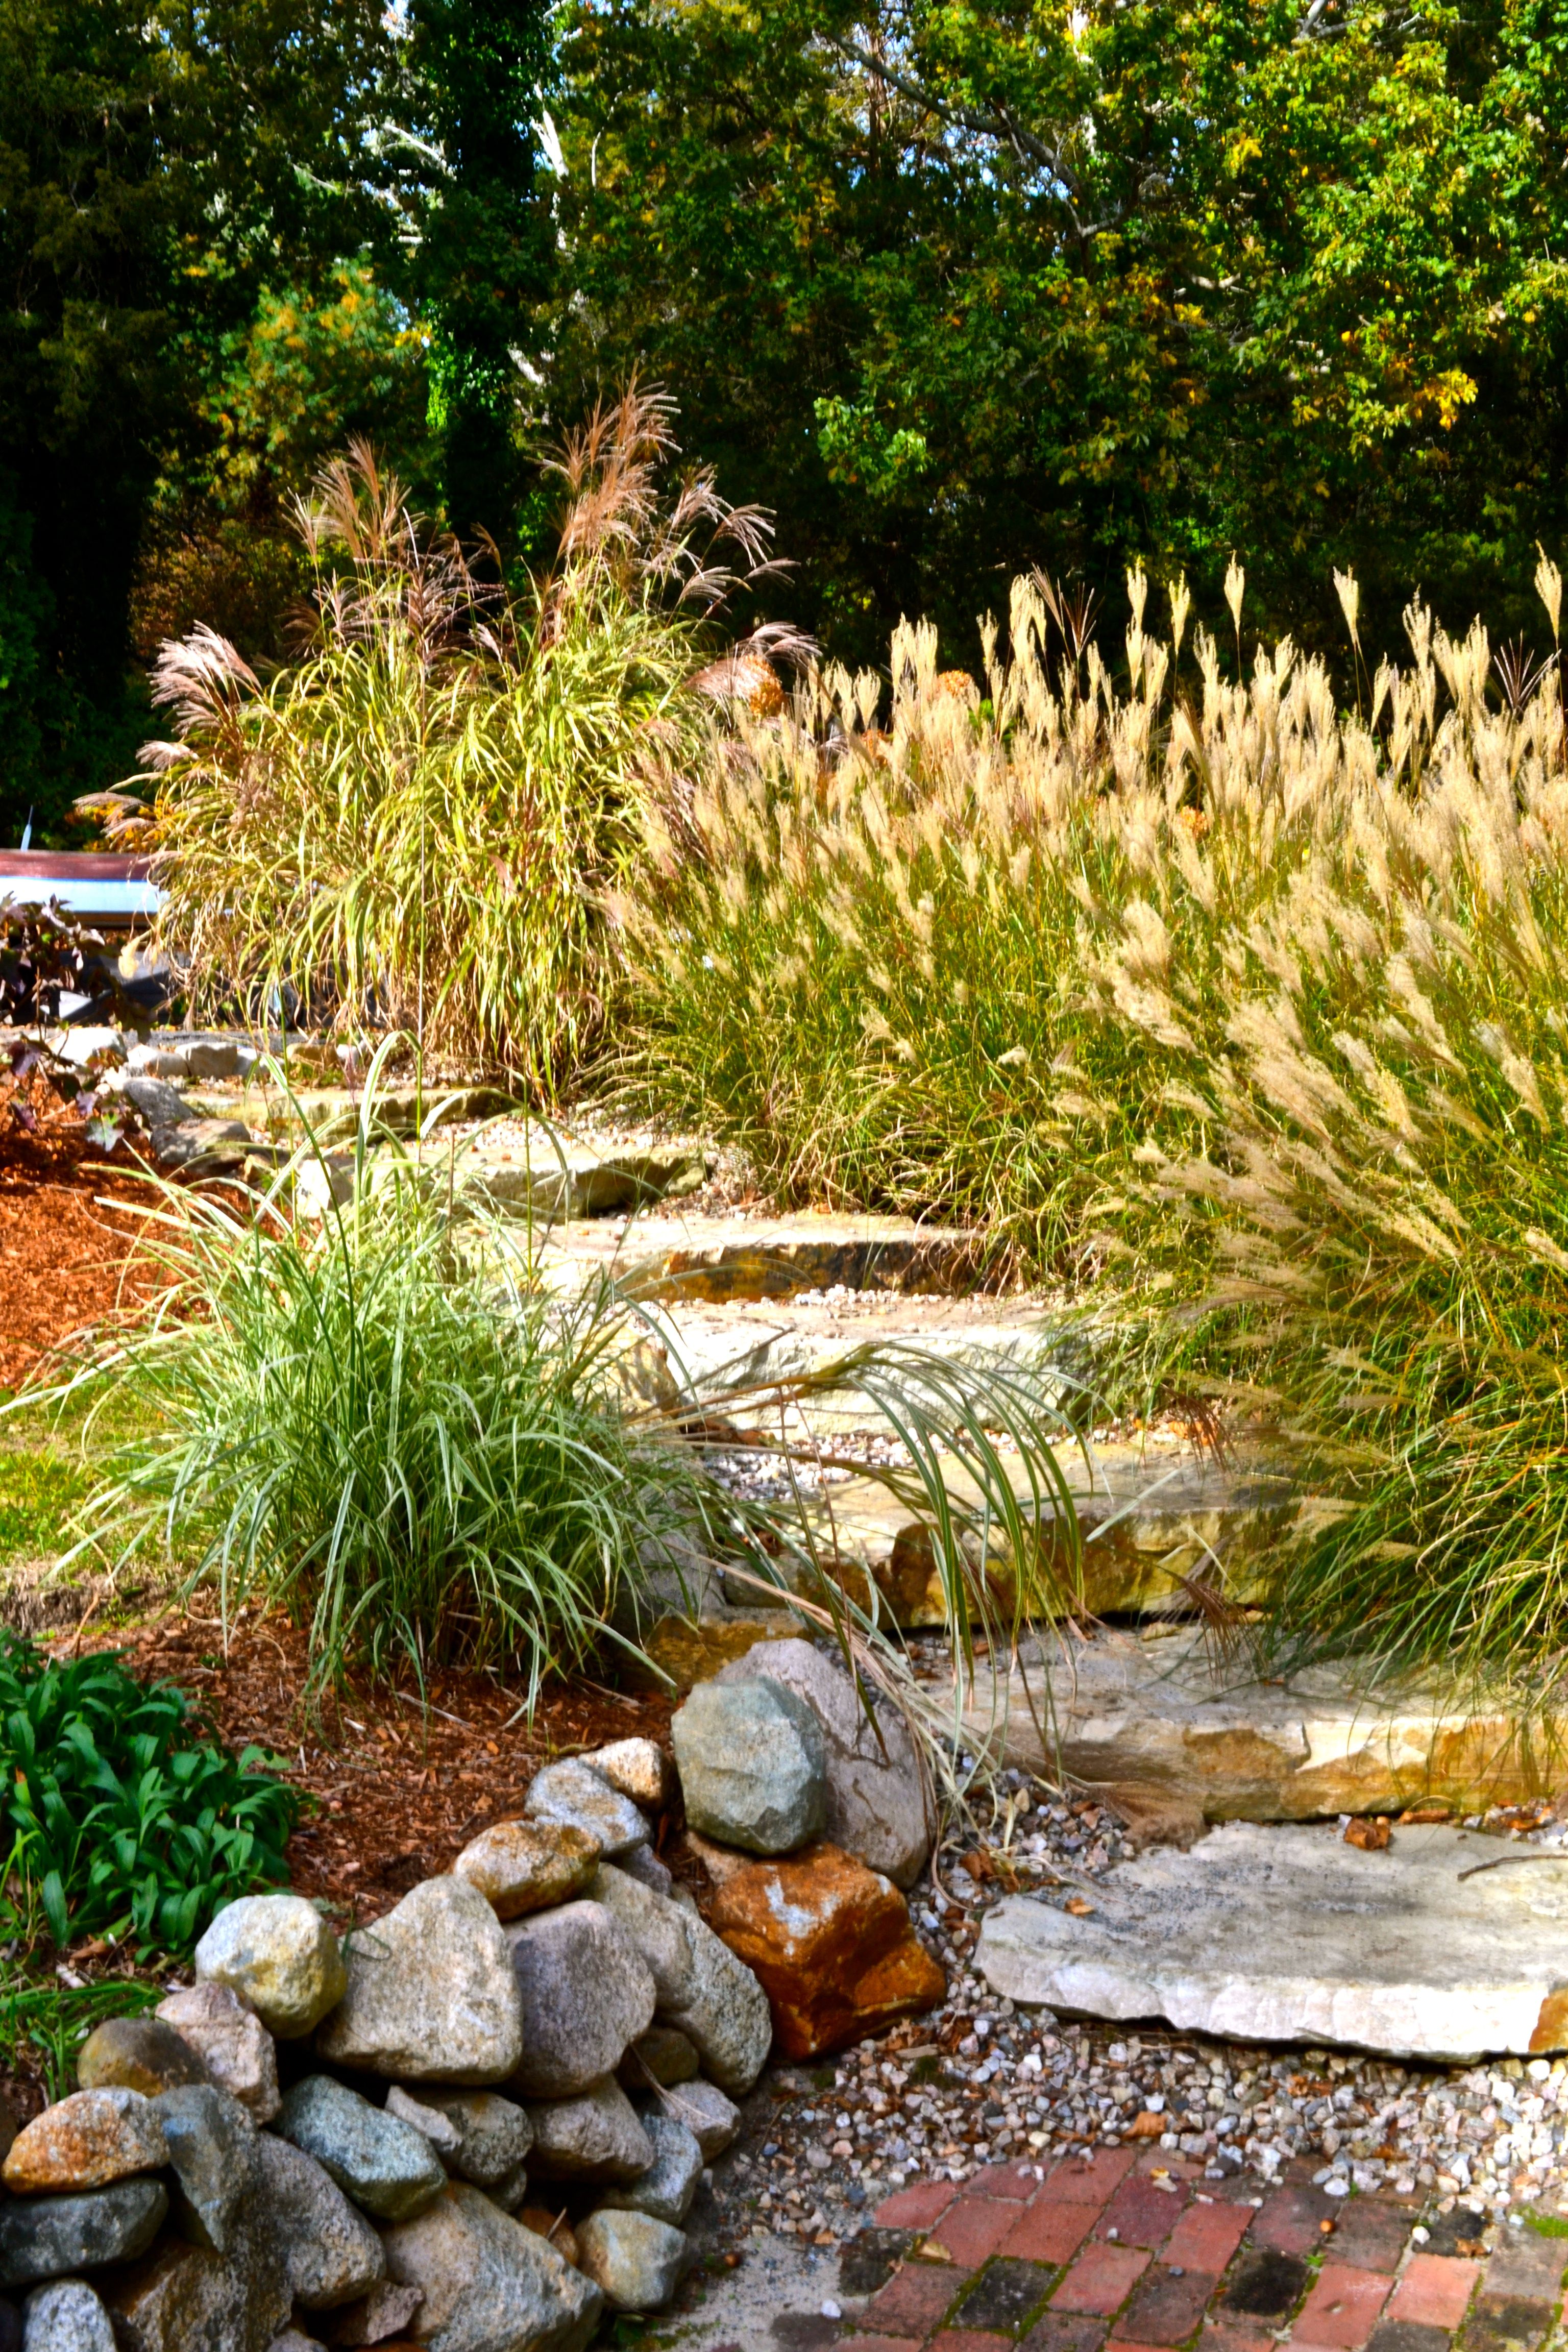 17 Landscaping Ideas For A Low-Maintenance Yard on Low Maintenance Backyard Ideas  id=74709